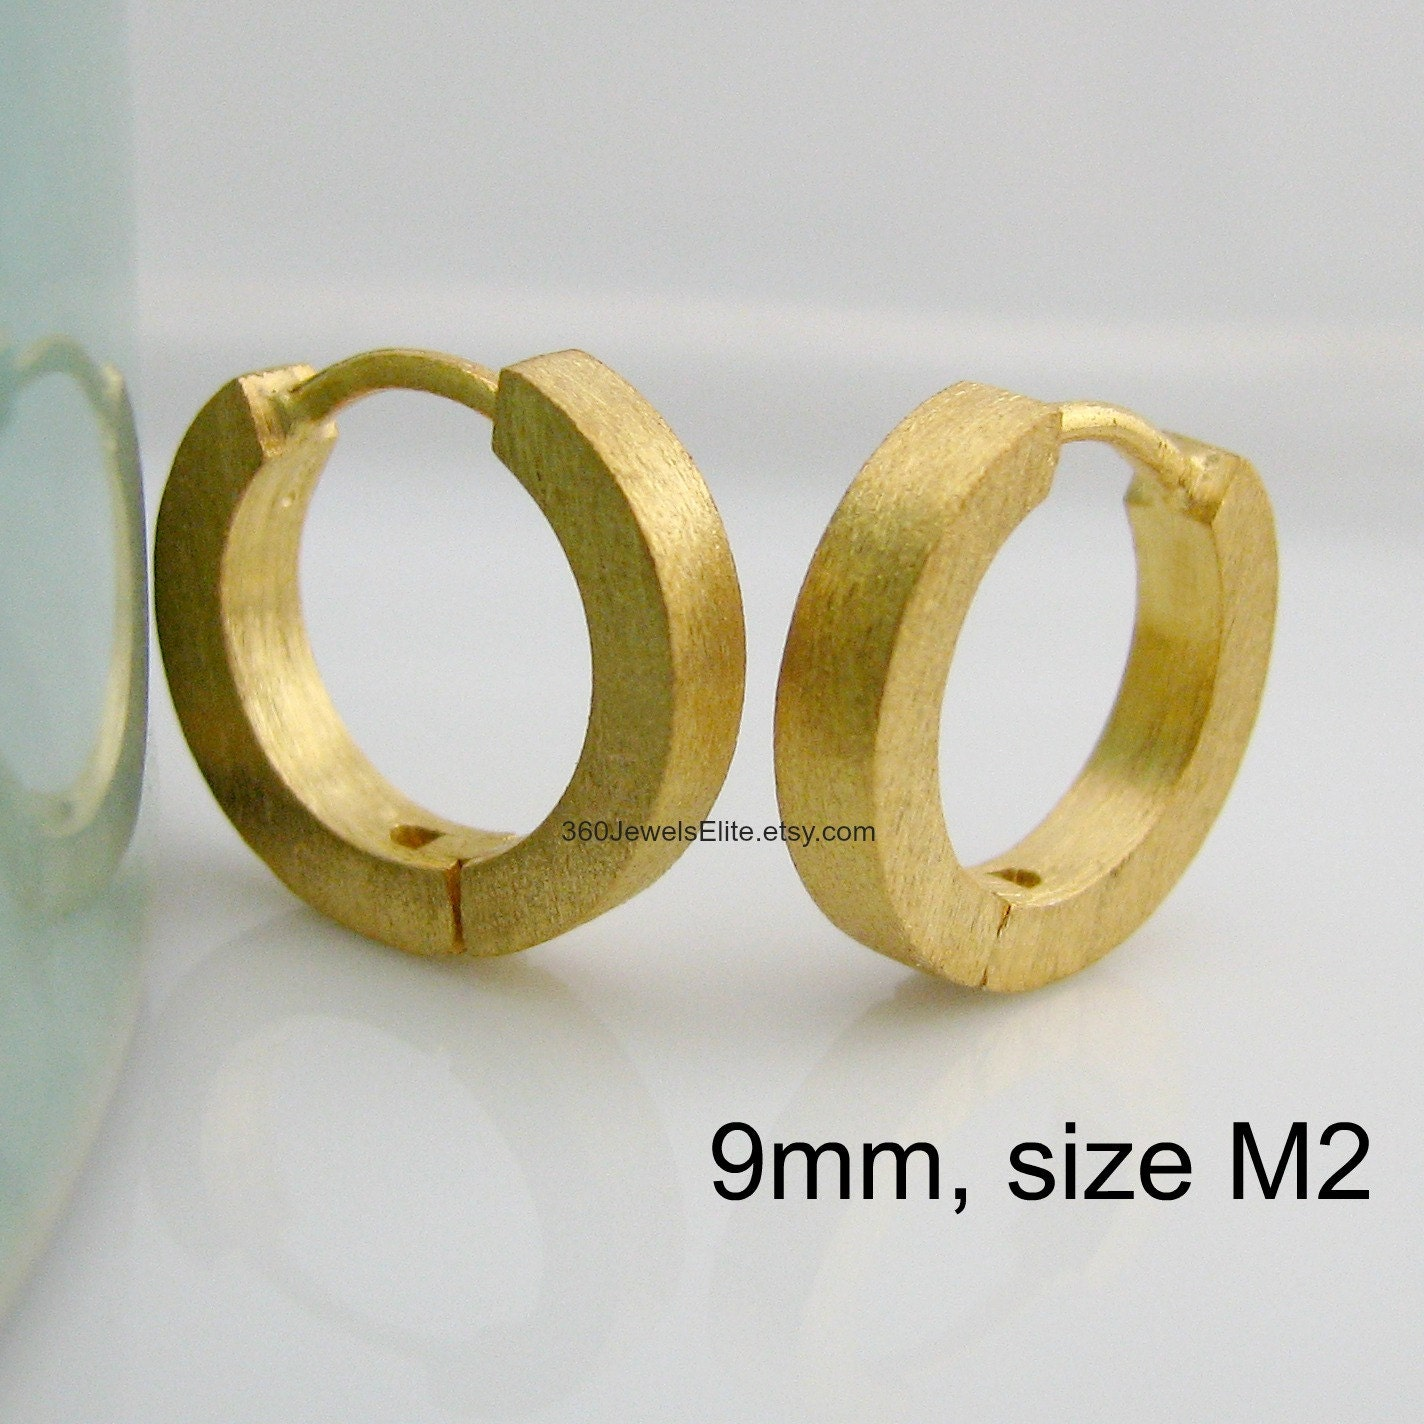 accessories golden free from lady item jewellery in hoop shipping men rings imitation earrings ear wholesale gold ring on jewelry